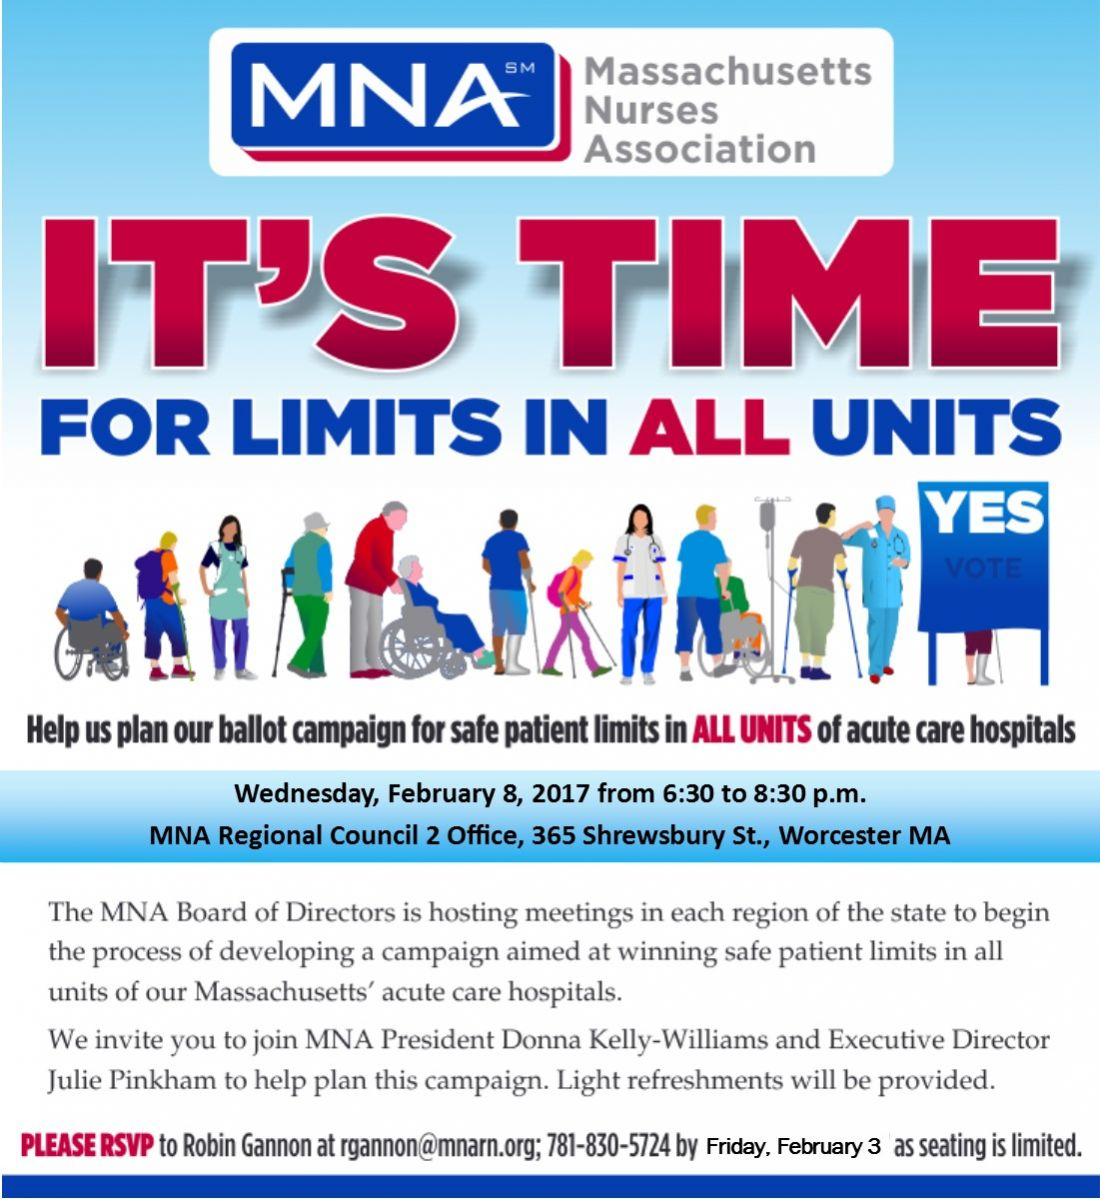 Regional Meeting on Ballot Campaign for Safe Patient Limits